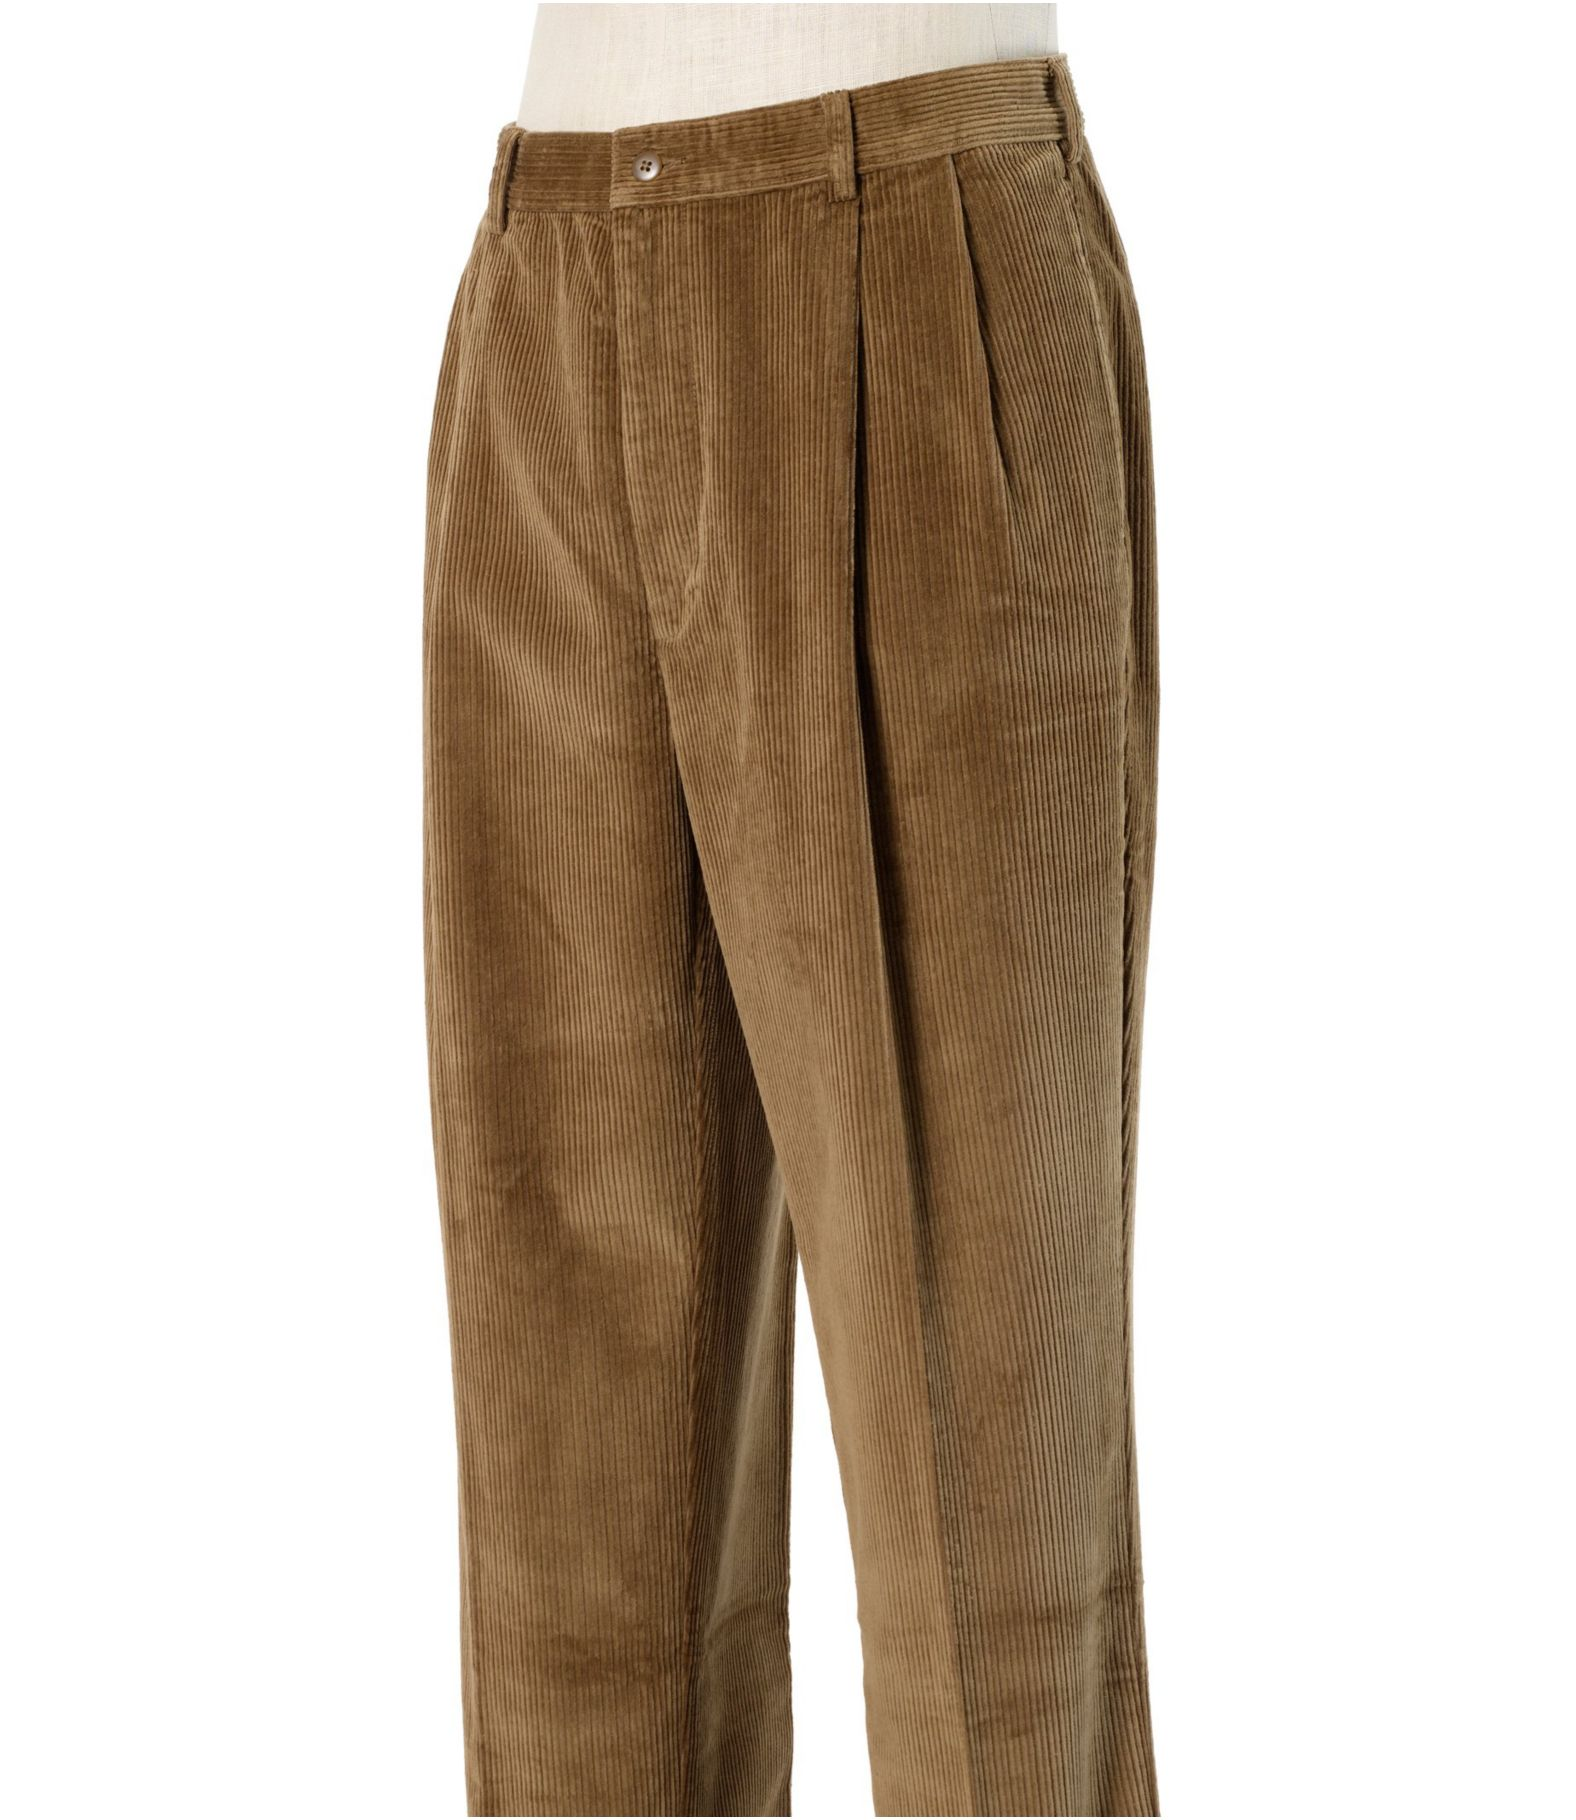 What Are Corduroy Pants Pant So